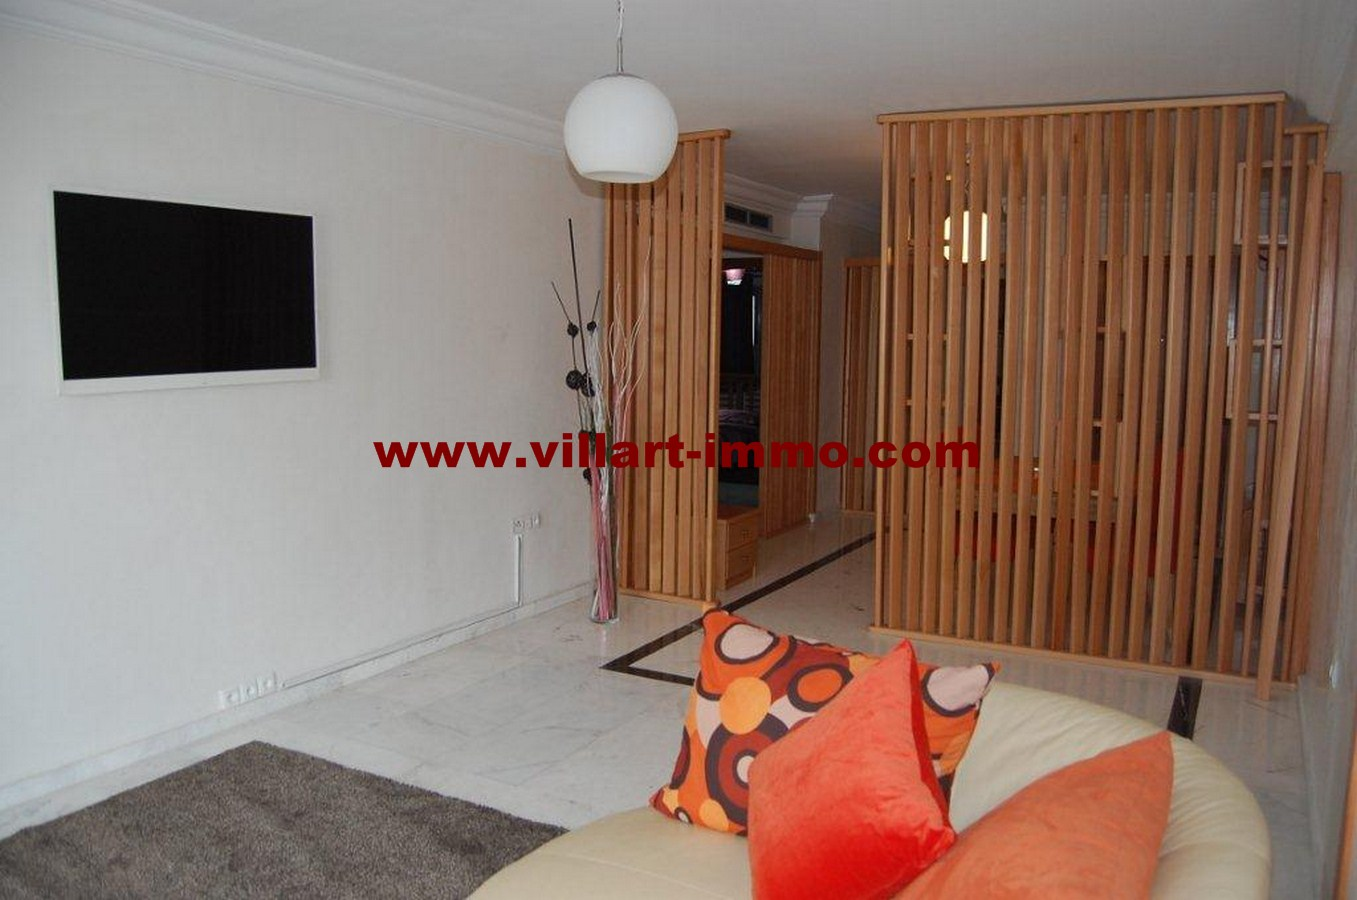 2-vente-appartement-tanger-centre-salon-2-va456-villart-immo